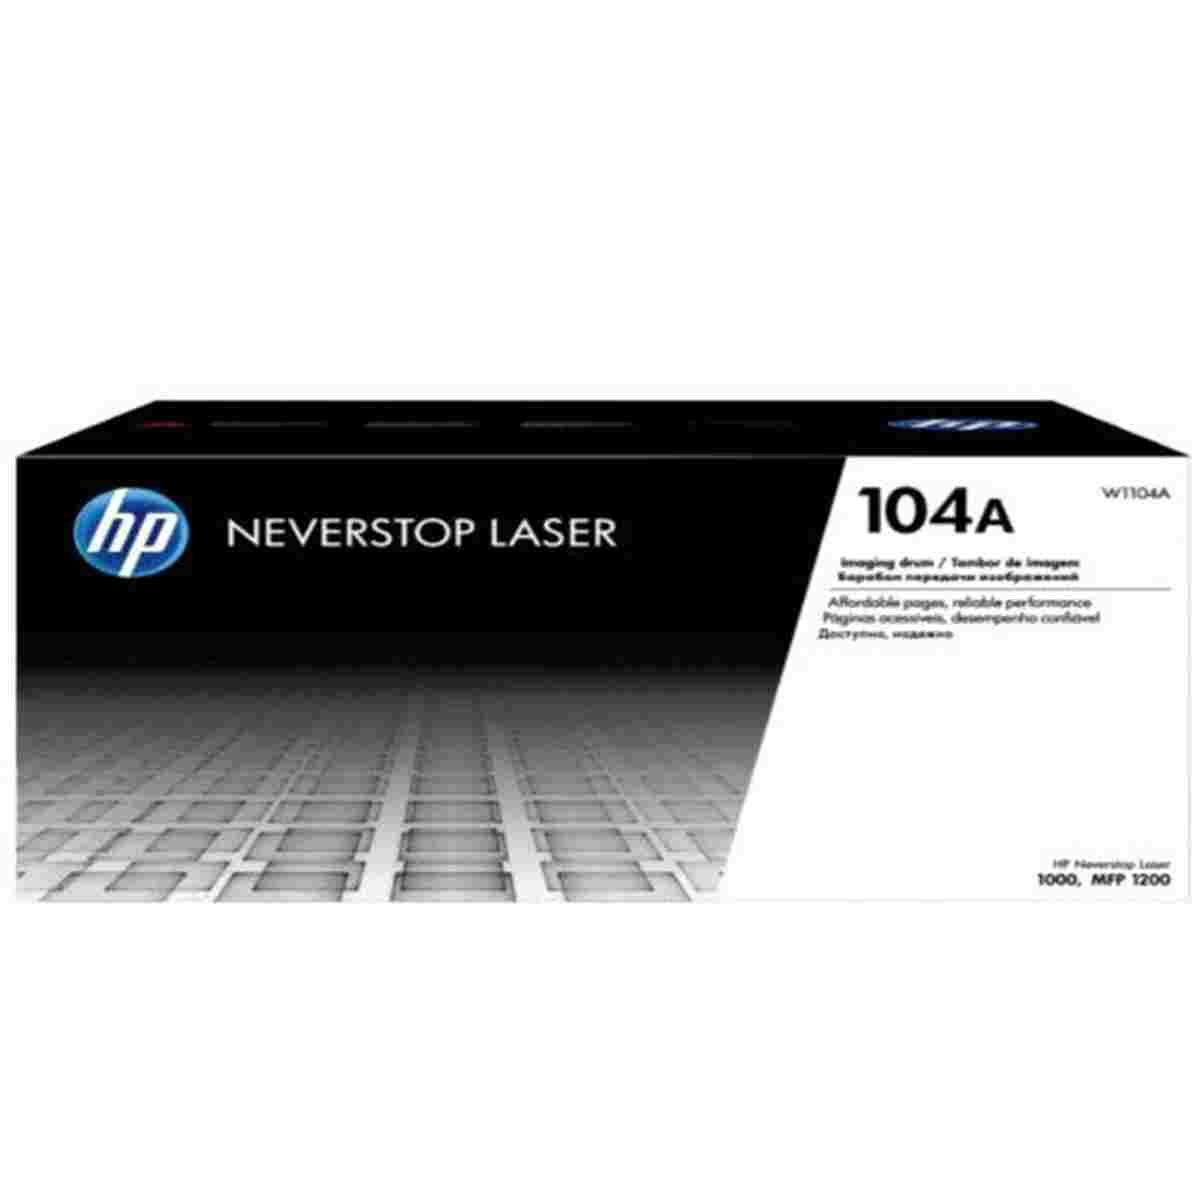 HP 104A Neverstop Imaging Drum